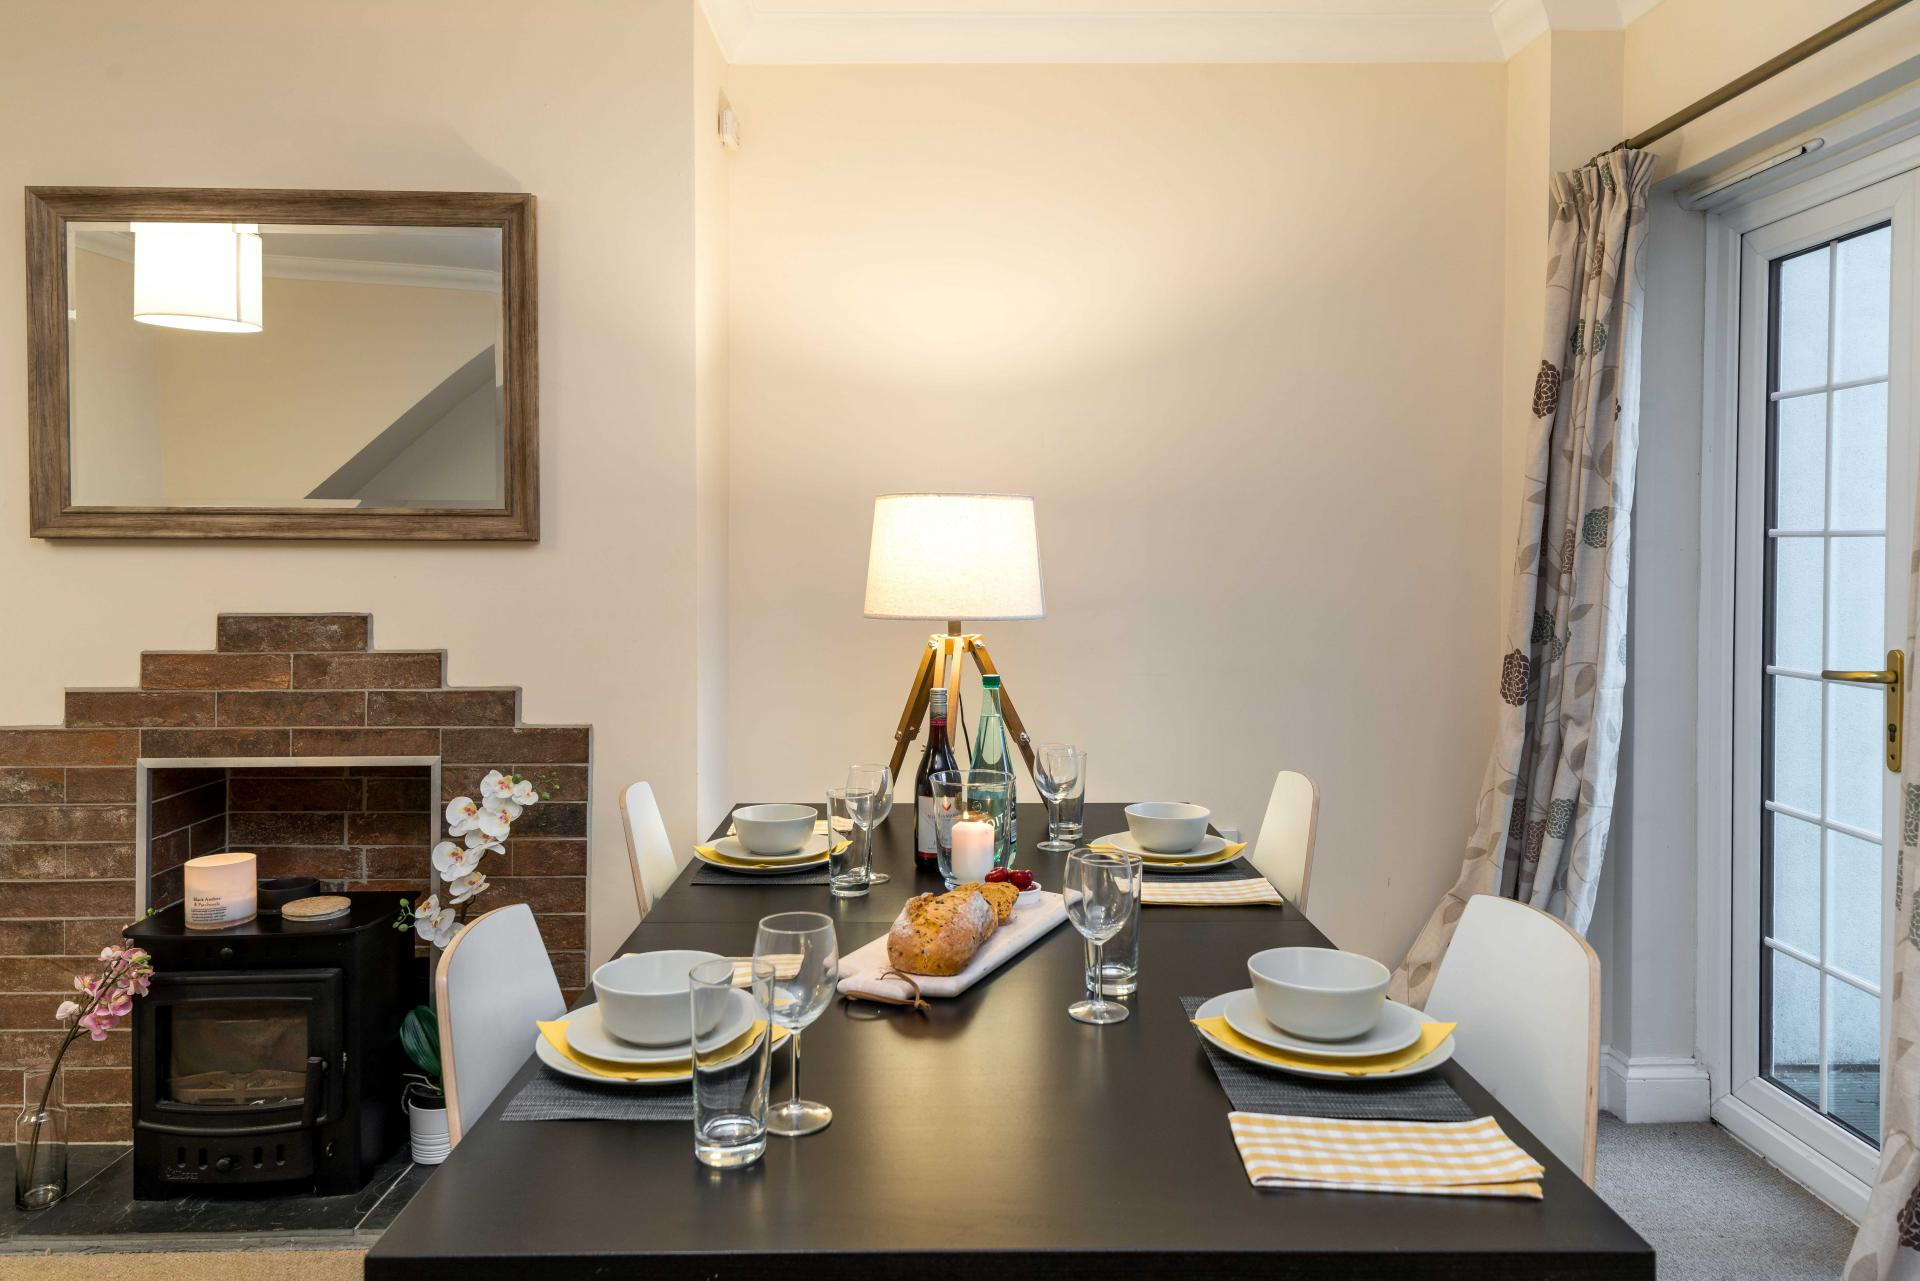 Dining Room at Stowfield House